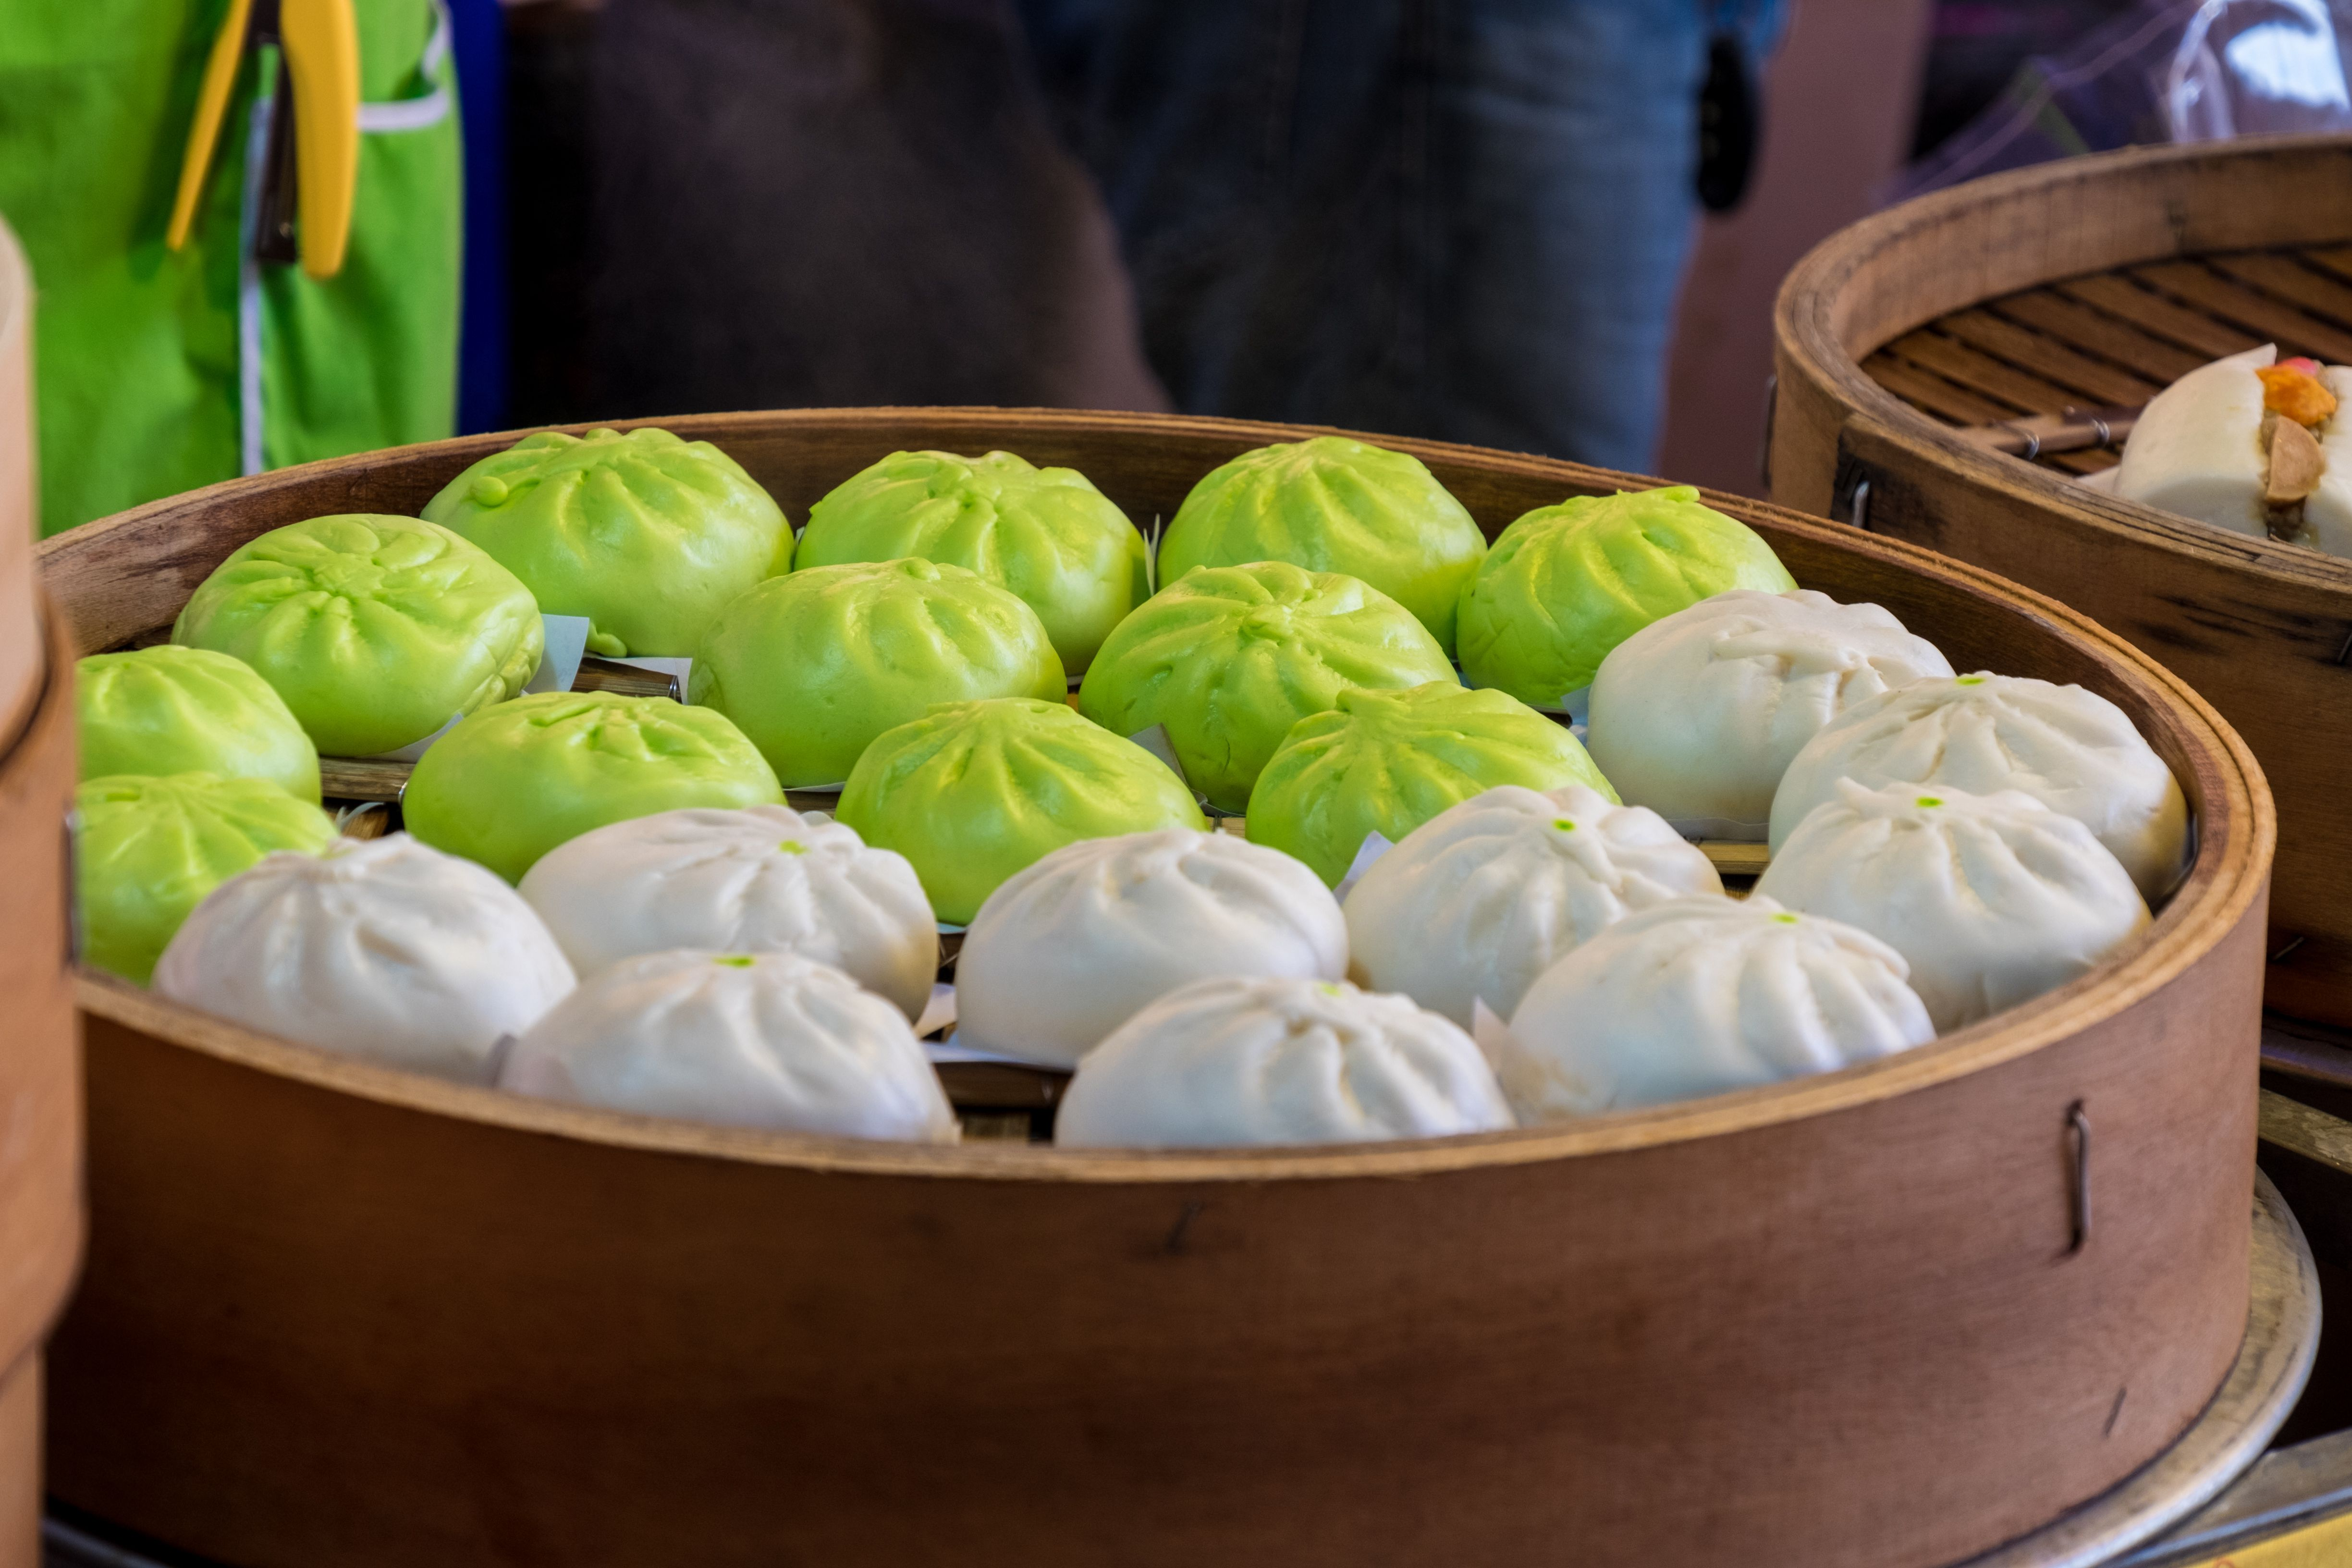 White and green salapao / bao buns in a basket in Thailand